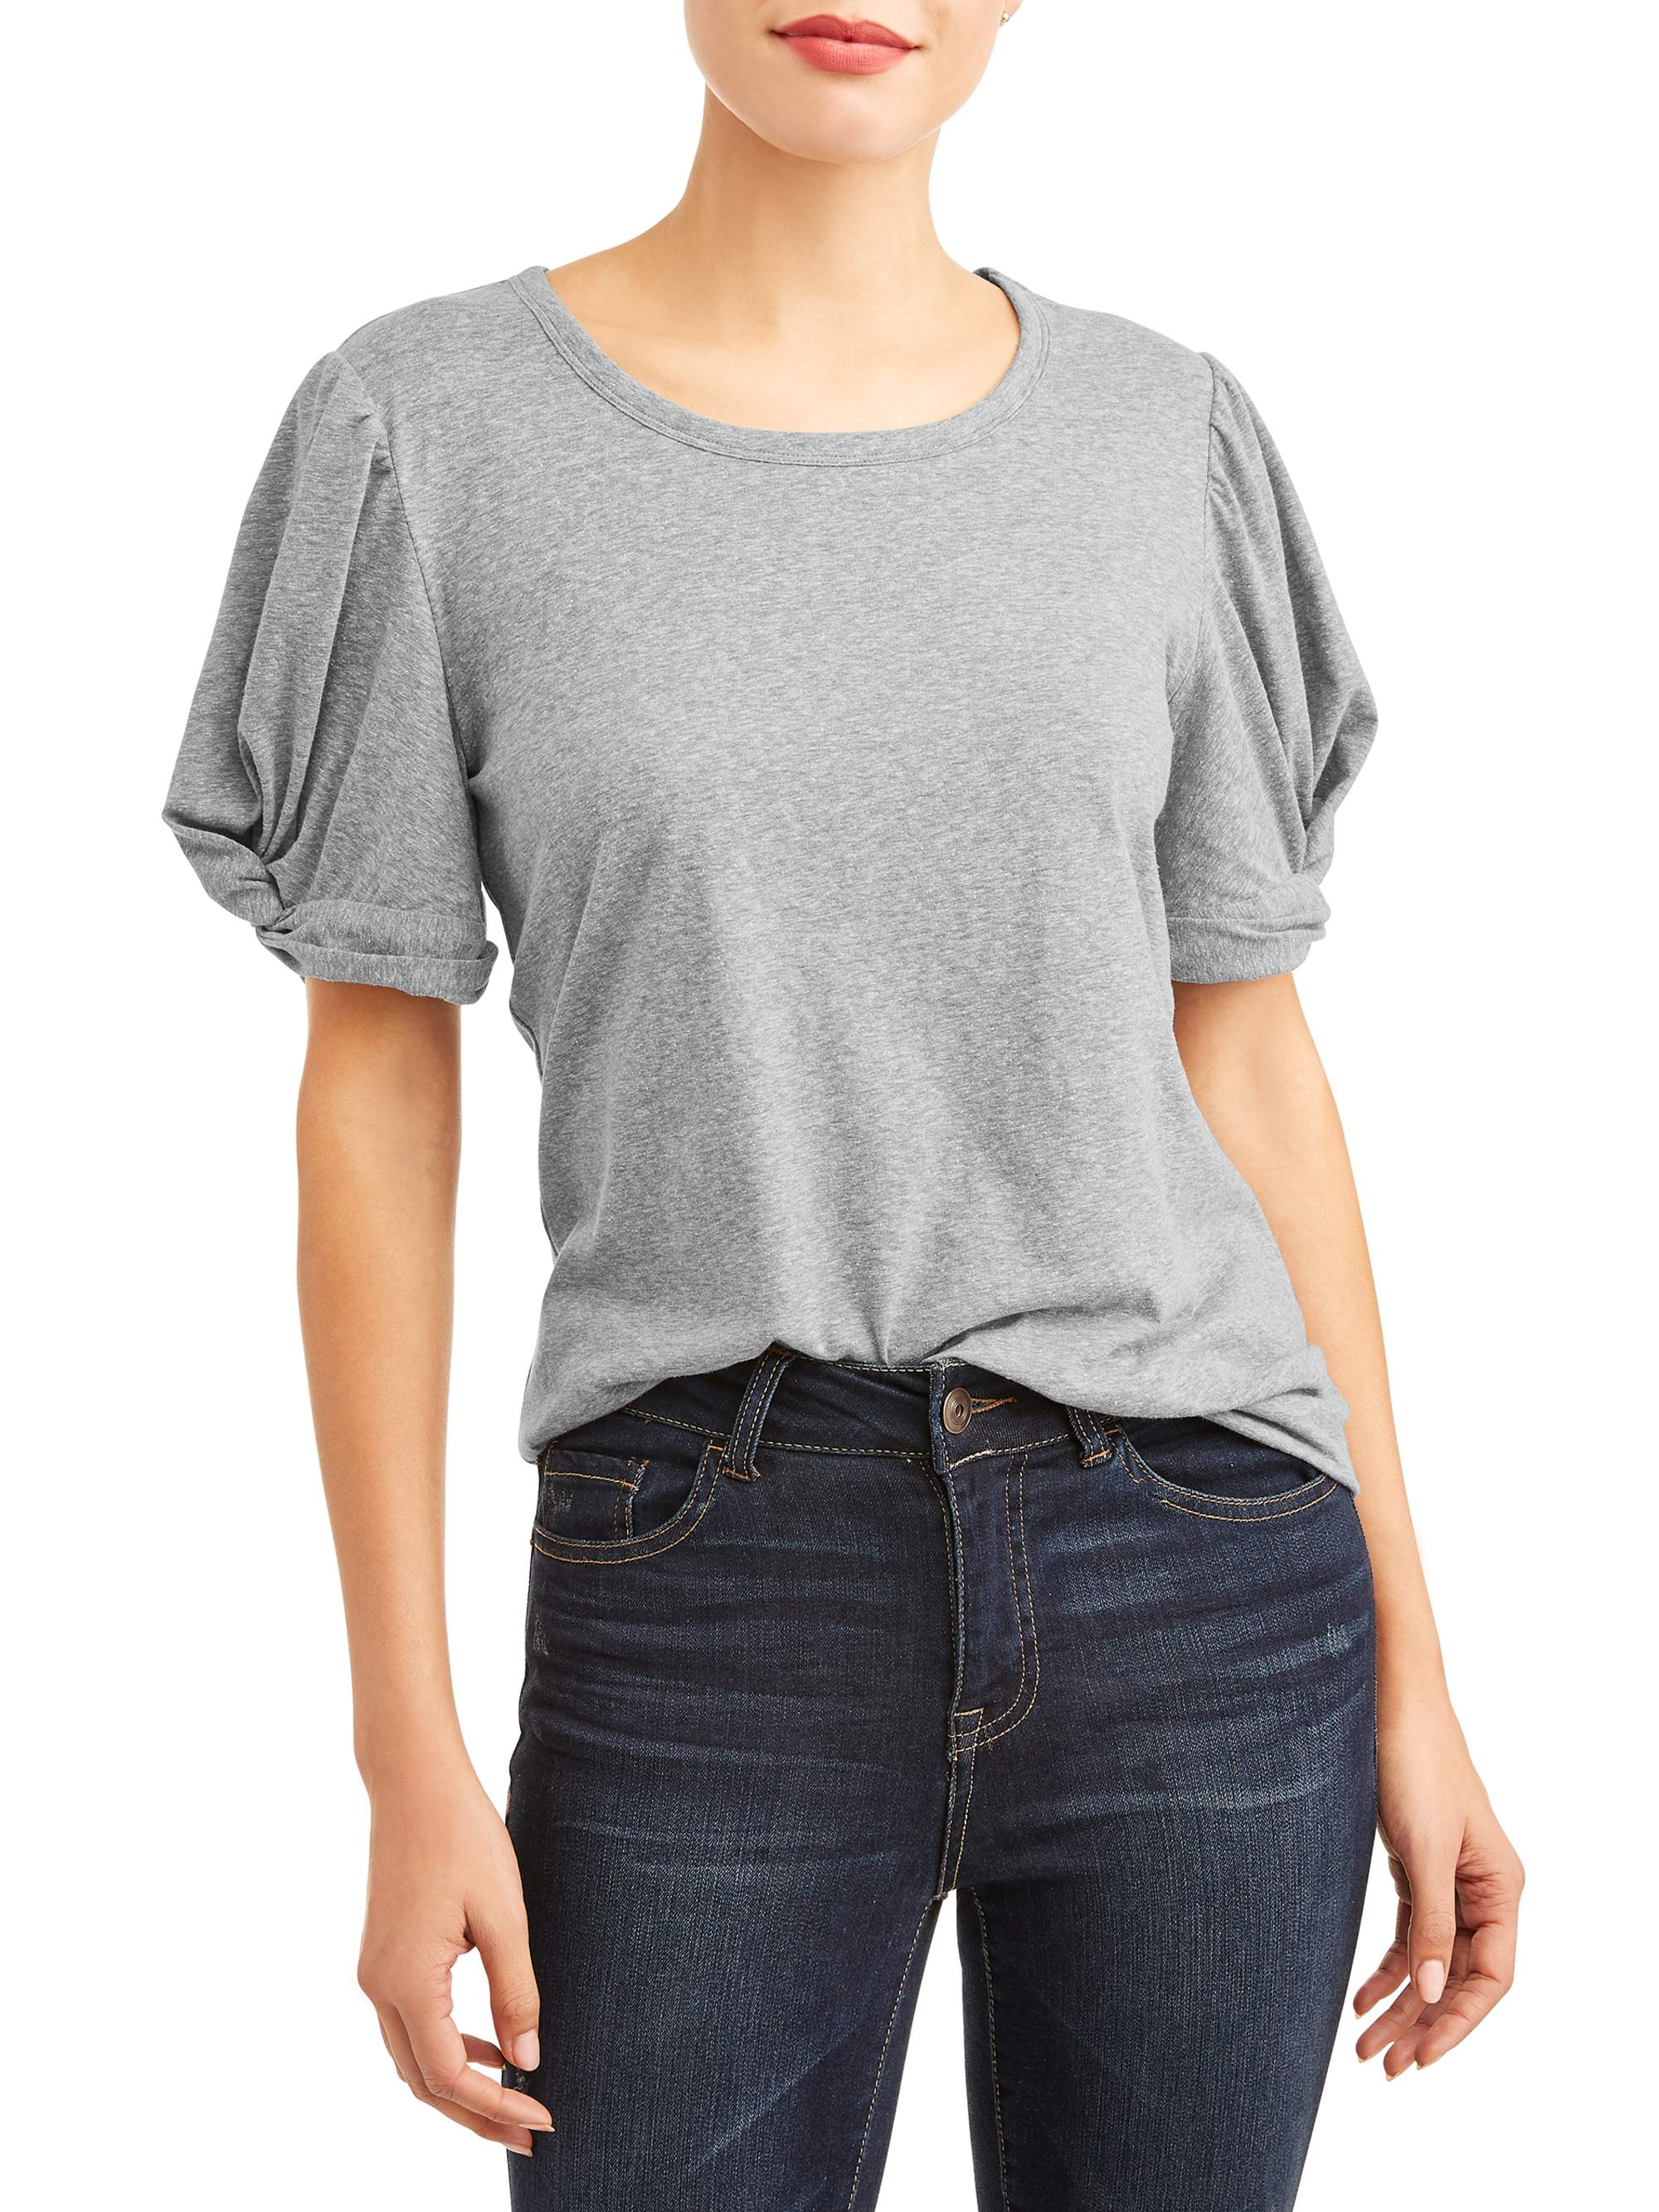 Women's Short Sleeve Knot T-Shirt